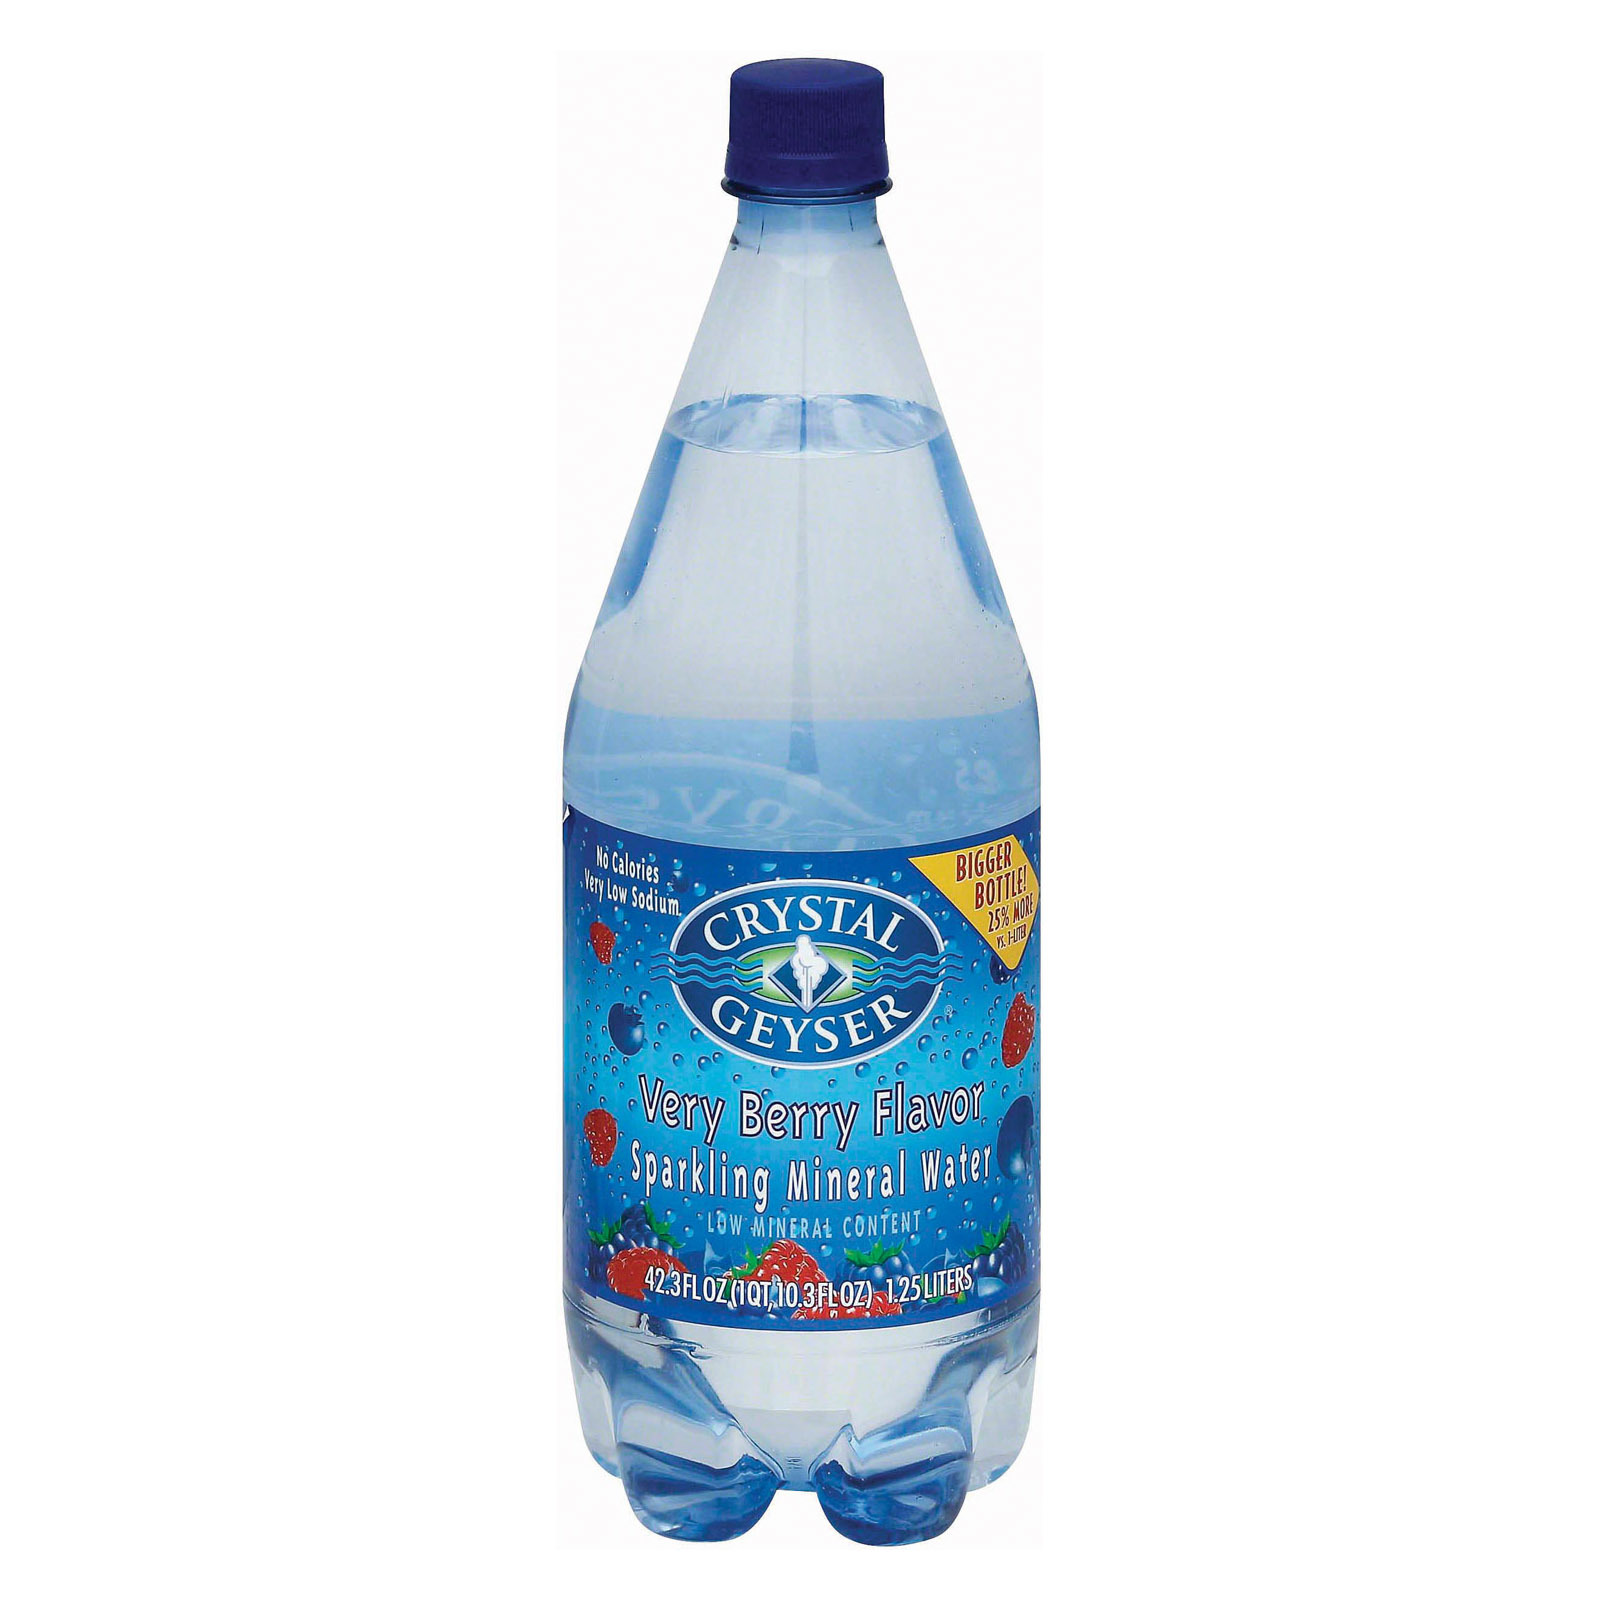 Crystal Geyser Sparkling Mineral Water - Very Berry - Case of 12 - 1.25 Liter